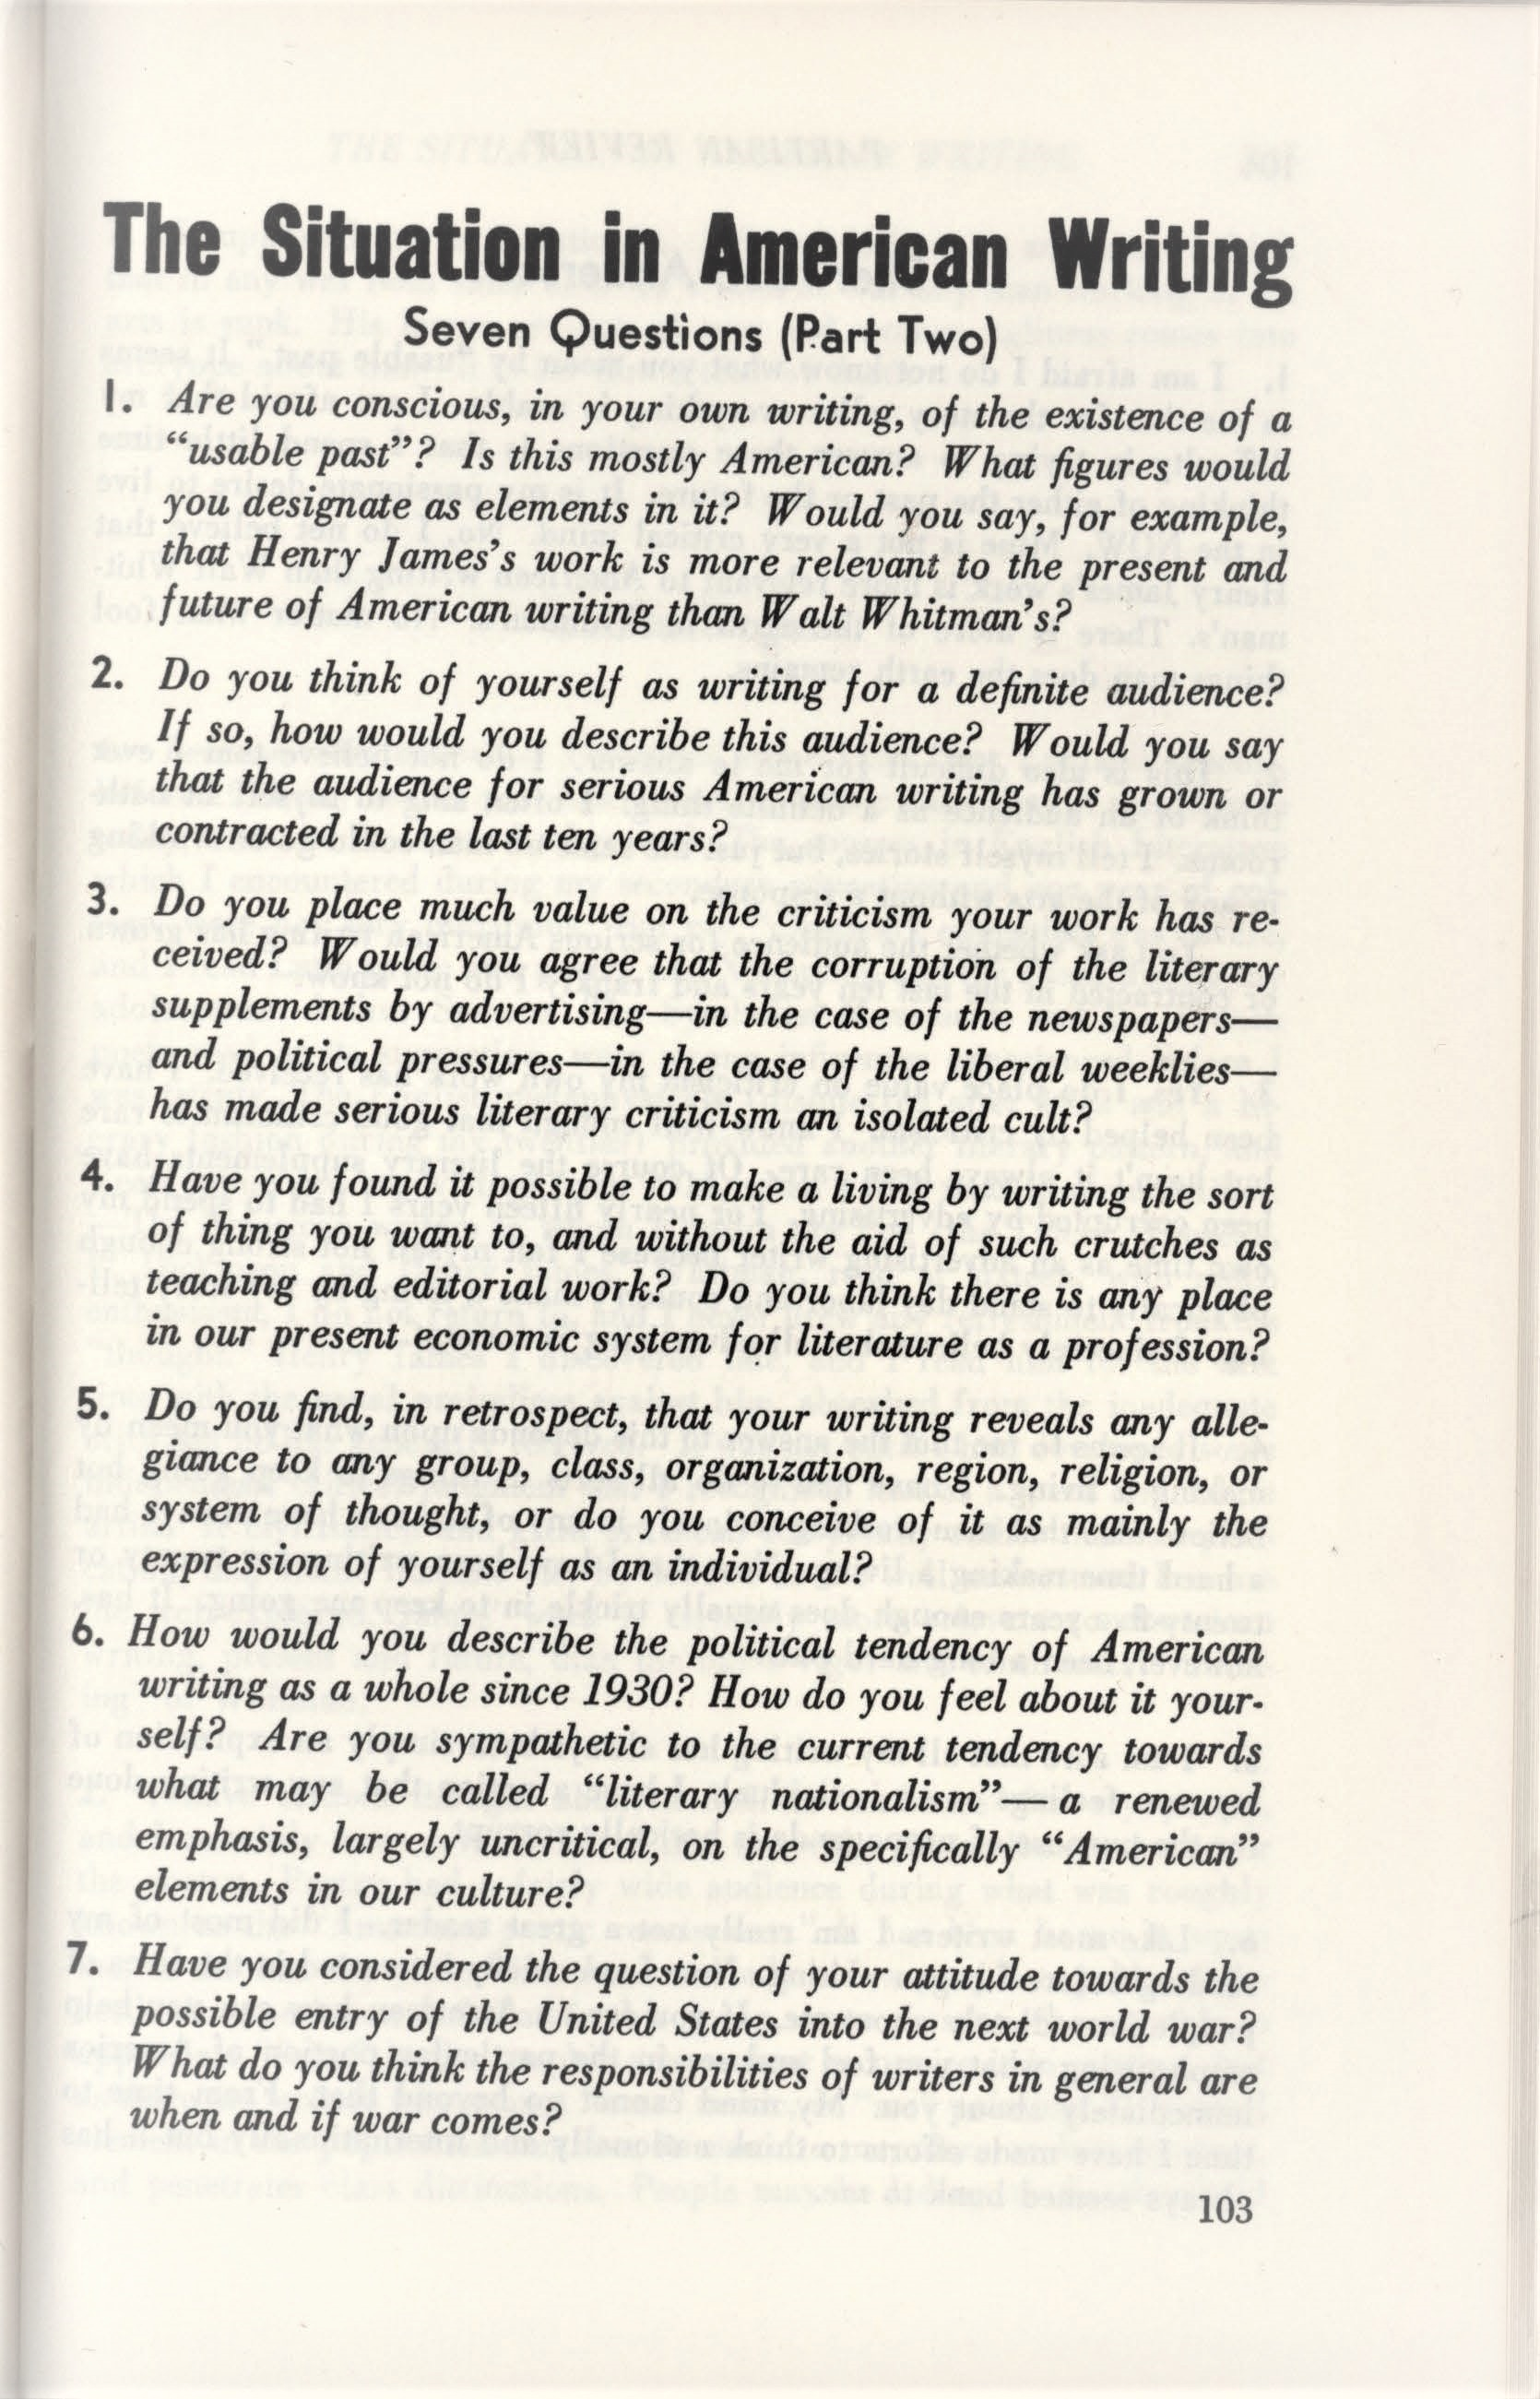 """The Situation in American Writing"" questions, Partisan Review 6, no. 5 (1939)."